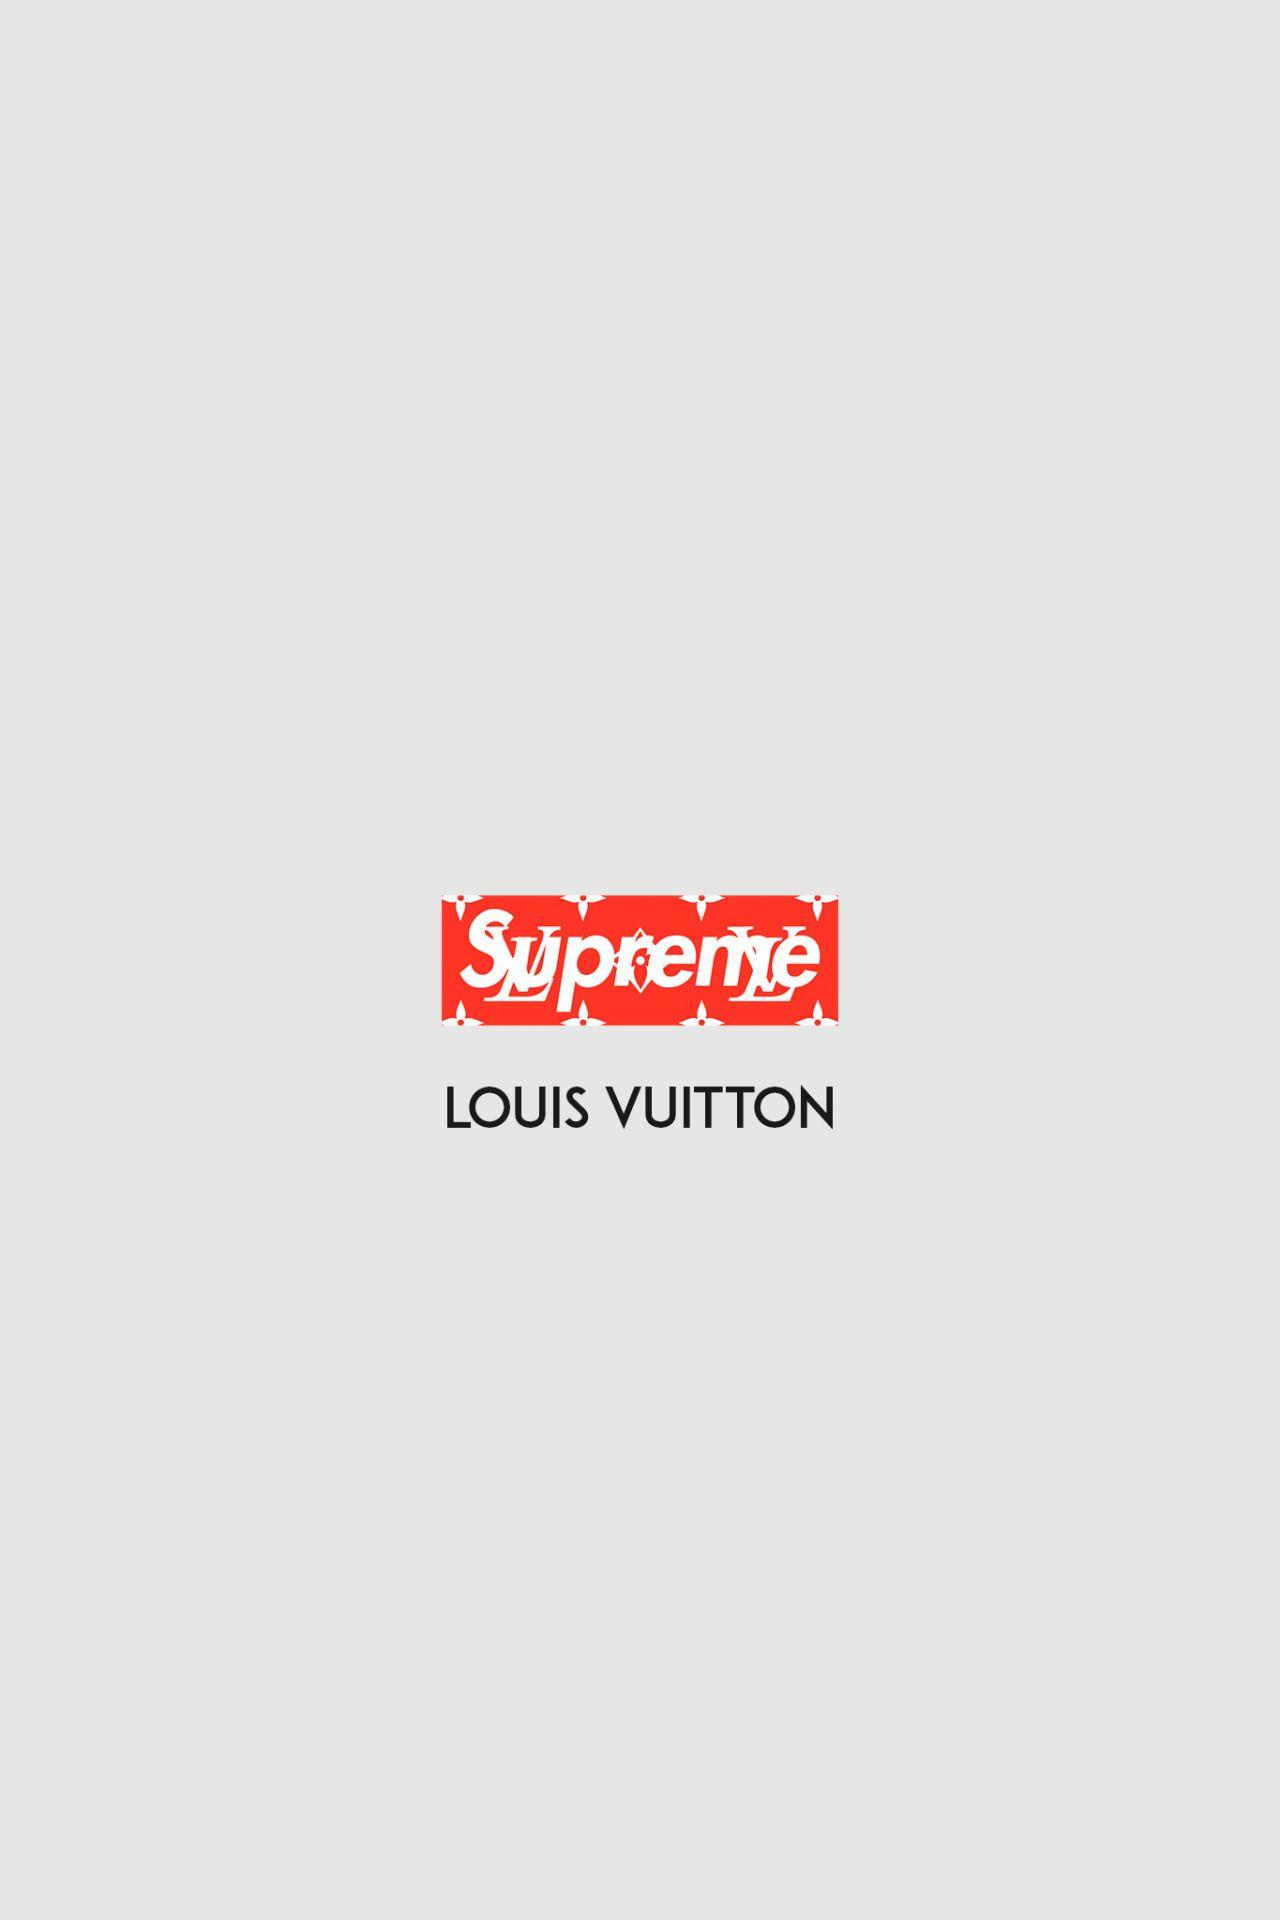 Supreme Louis Vuitton Wallpapers Wallpaper Cave